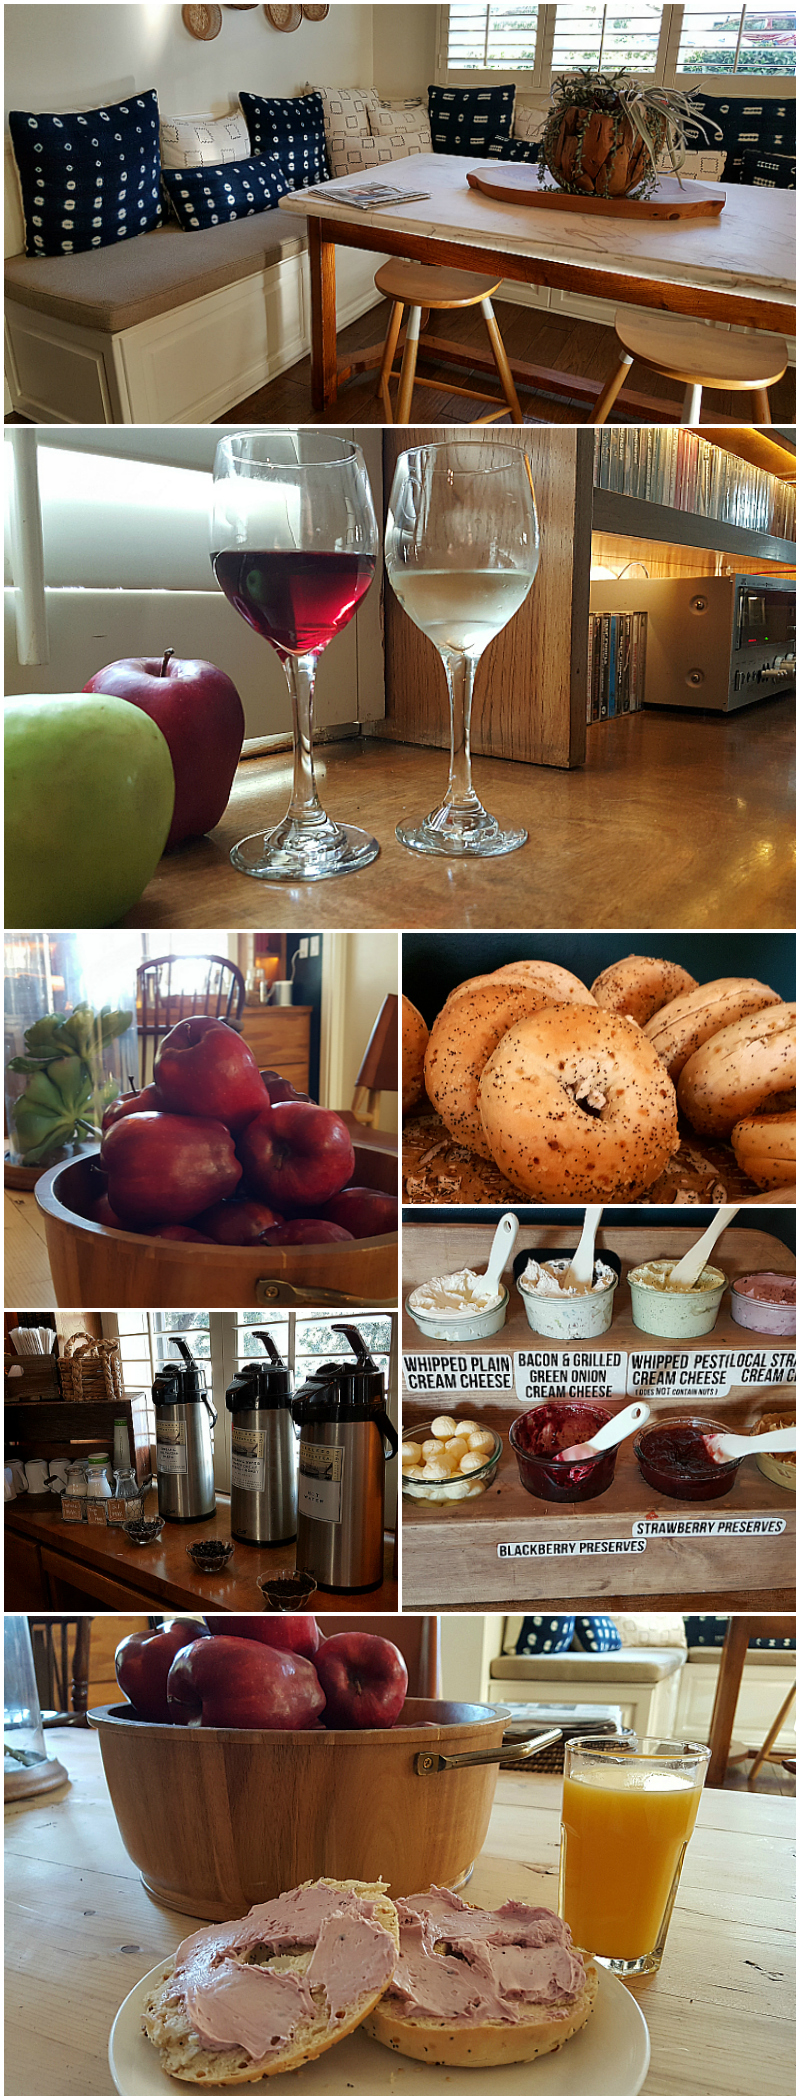 Complimentary Food and Drinks at Hotel Carmel